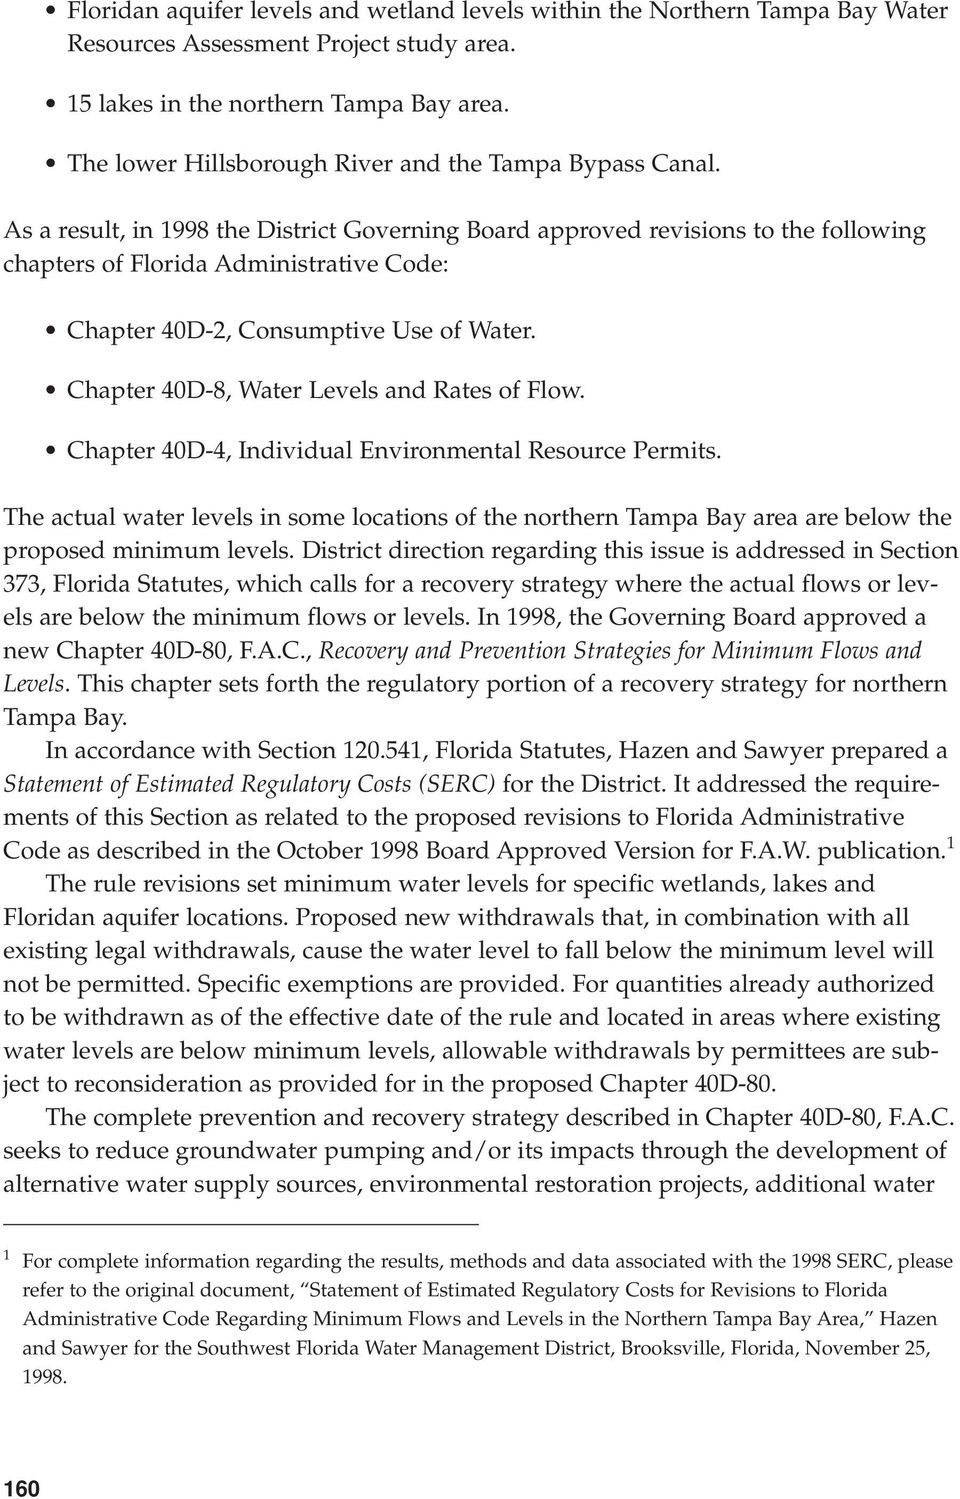 As a result, in 1998 the District Governing Board approved revisions to the following chapters of Florida Administrative Code: Chapter 40D-2, Consumptive Use of Water.